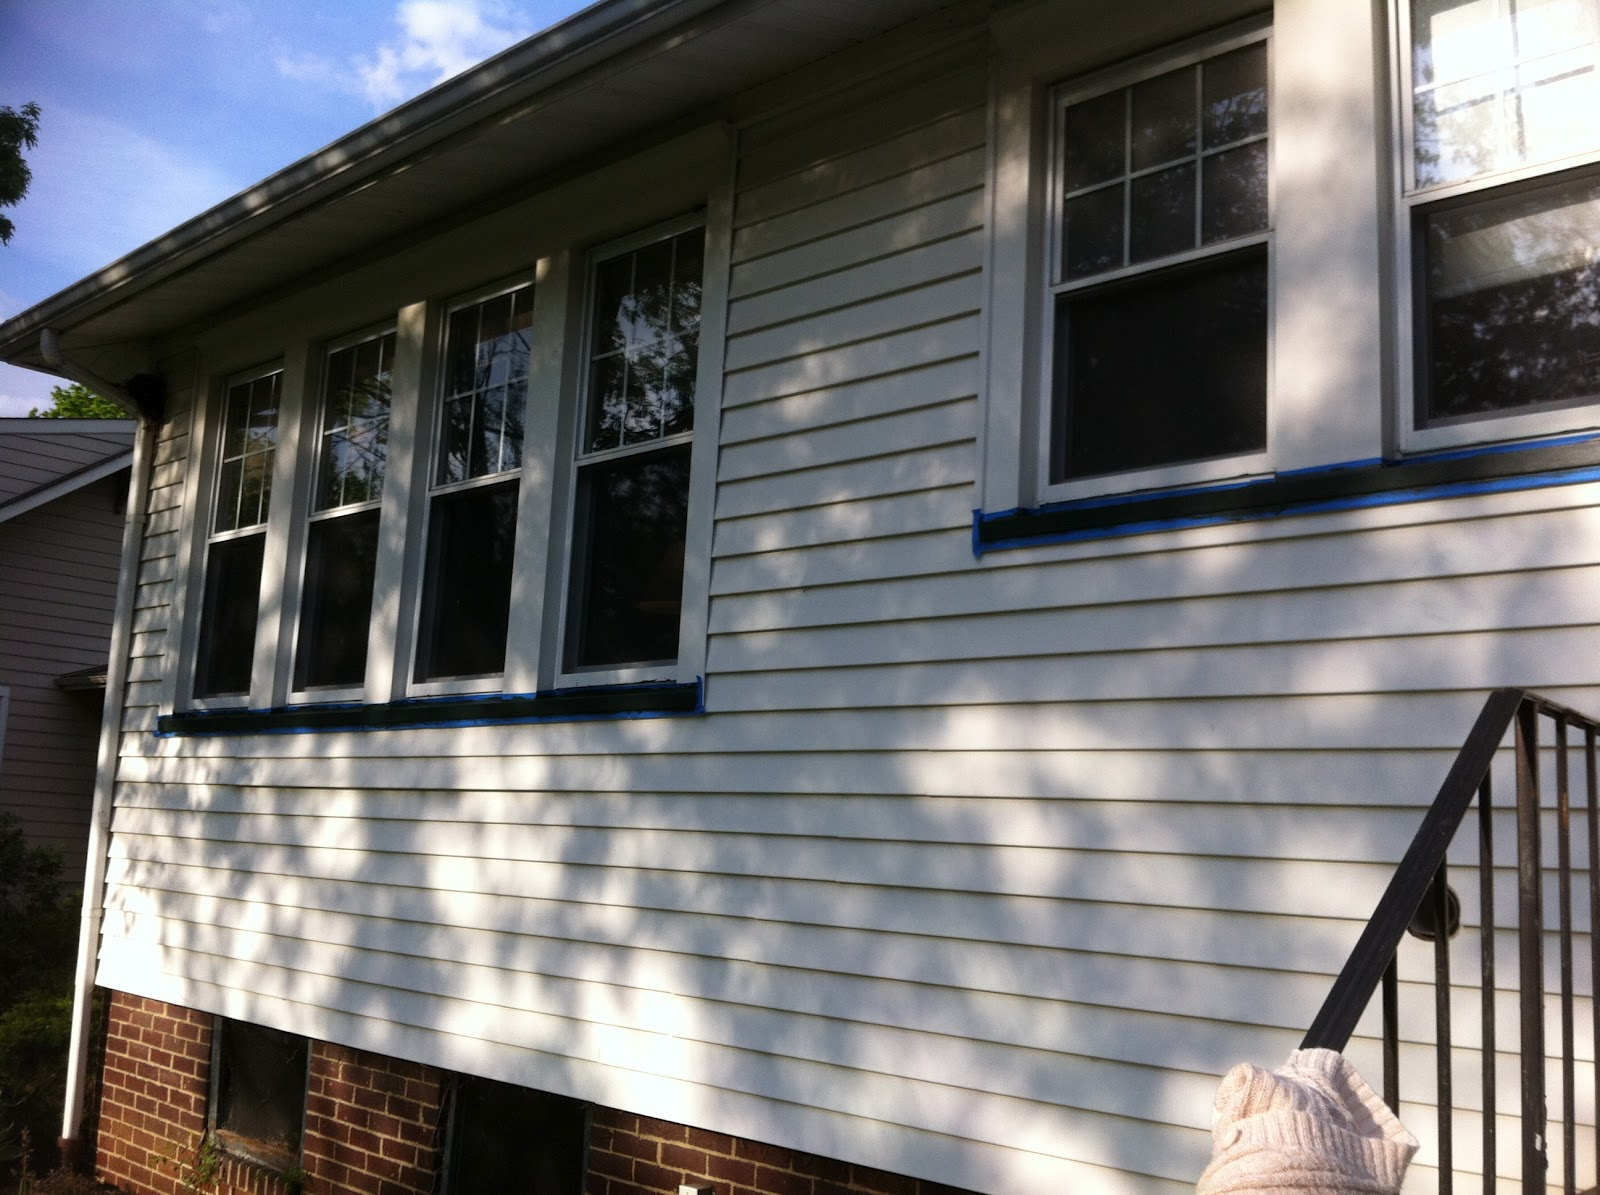 Our New To Us 1910 Foursquare Home Blue Vinyl Siding